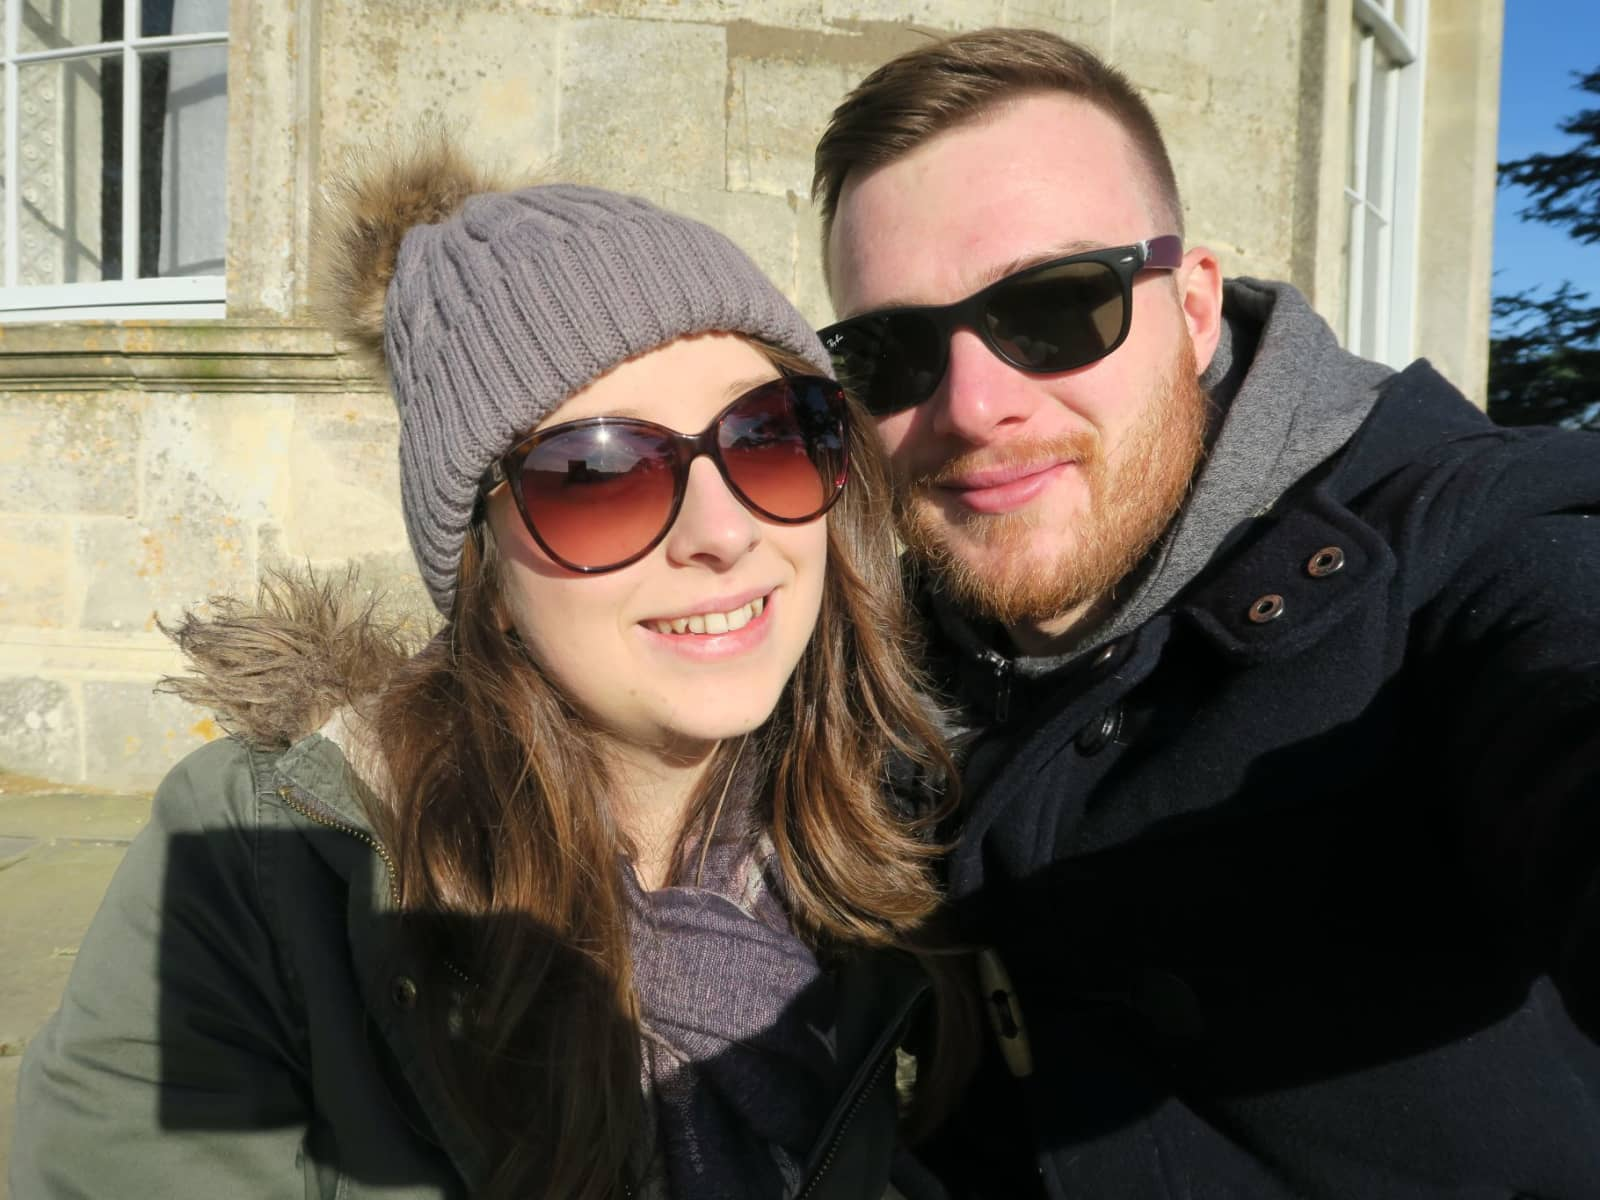 Laura & Daniel from Chichester, United Kingdom